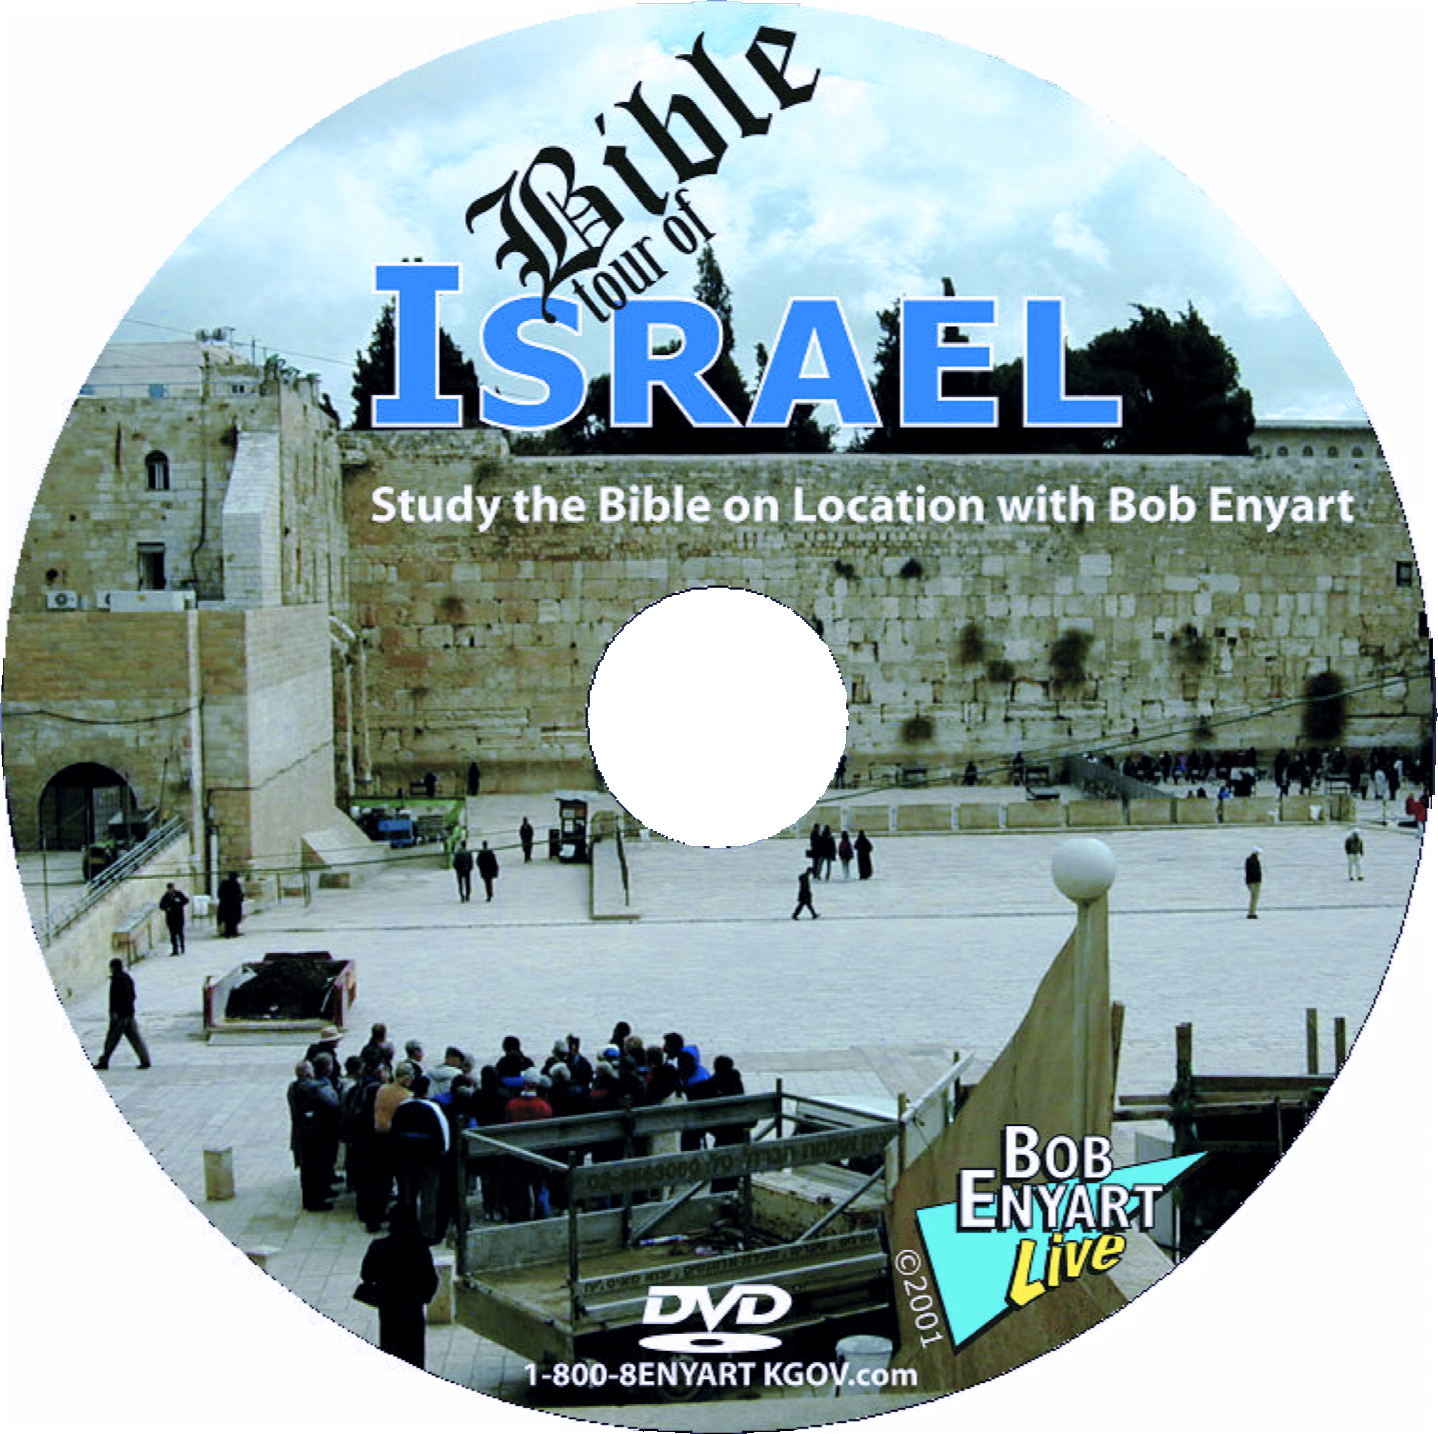 Bob Enyart's Bible Tour of Israel DVD cover